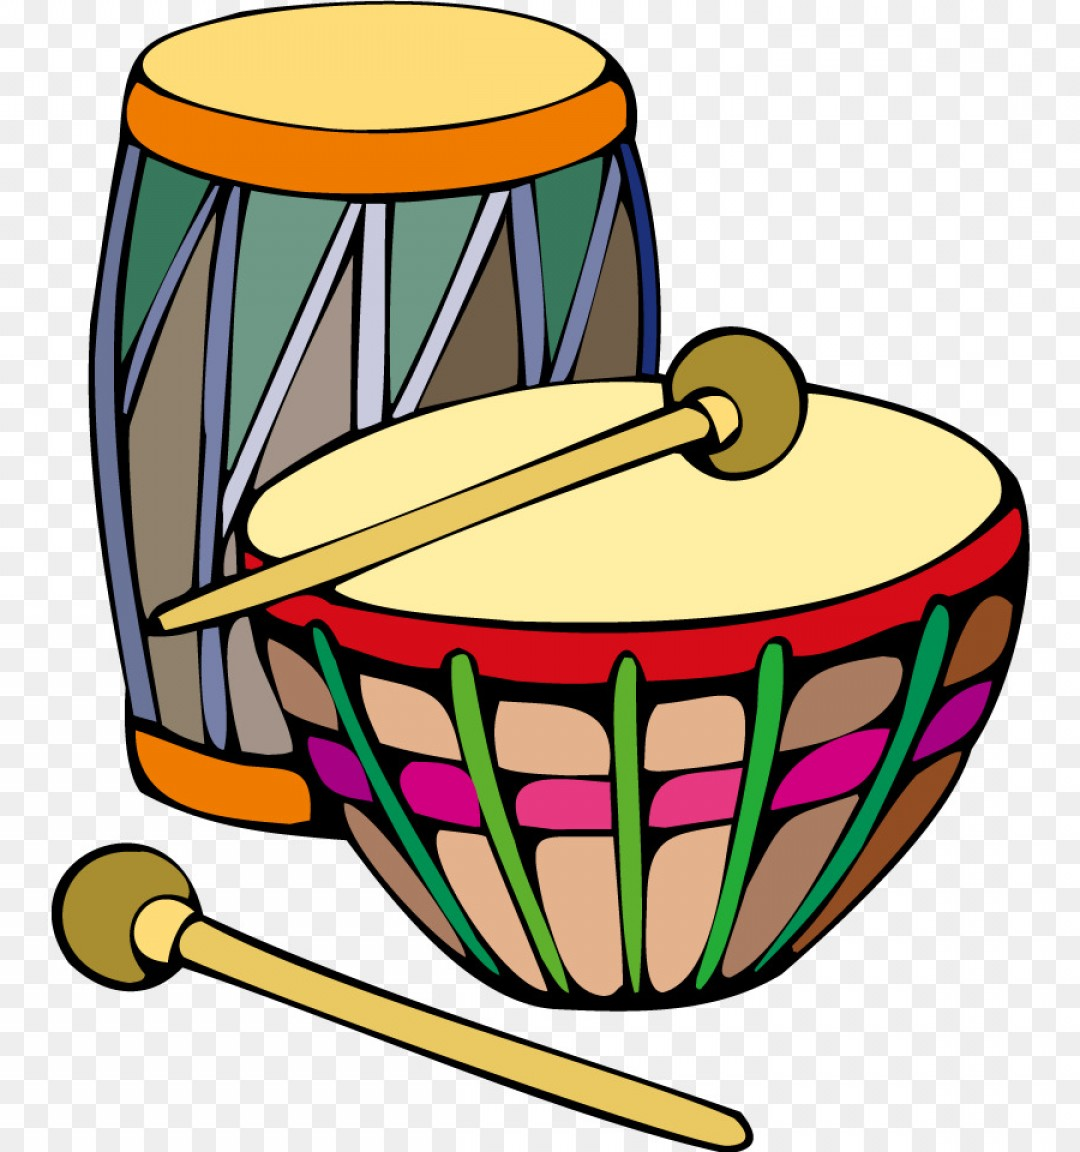 Bongo drums clipart clipart black and white library Png Bongo Drum Clip Art Cartoon Vector Color Drum | GeekChicPro clipart black and white library